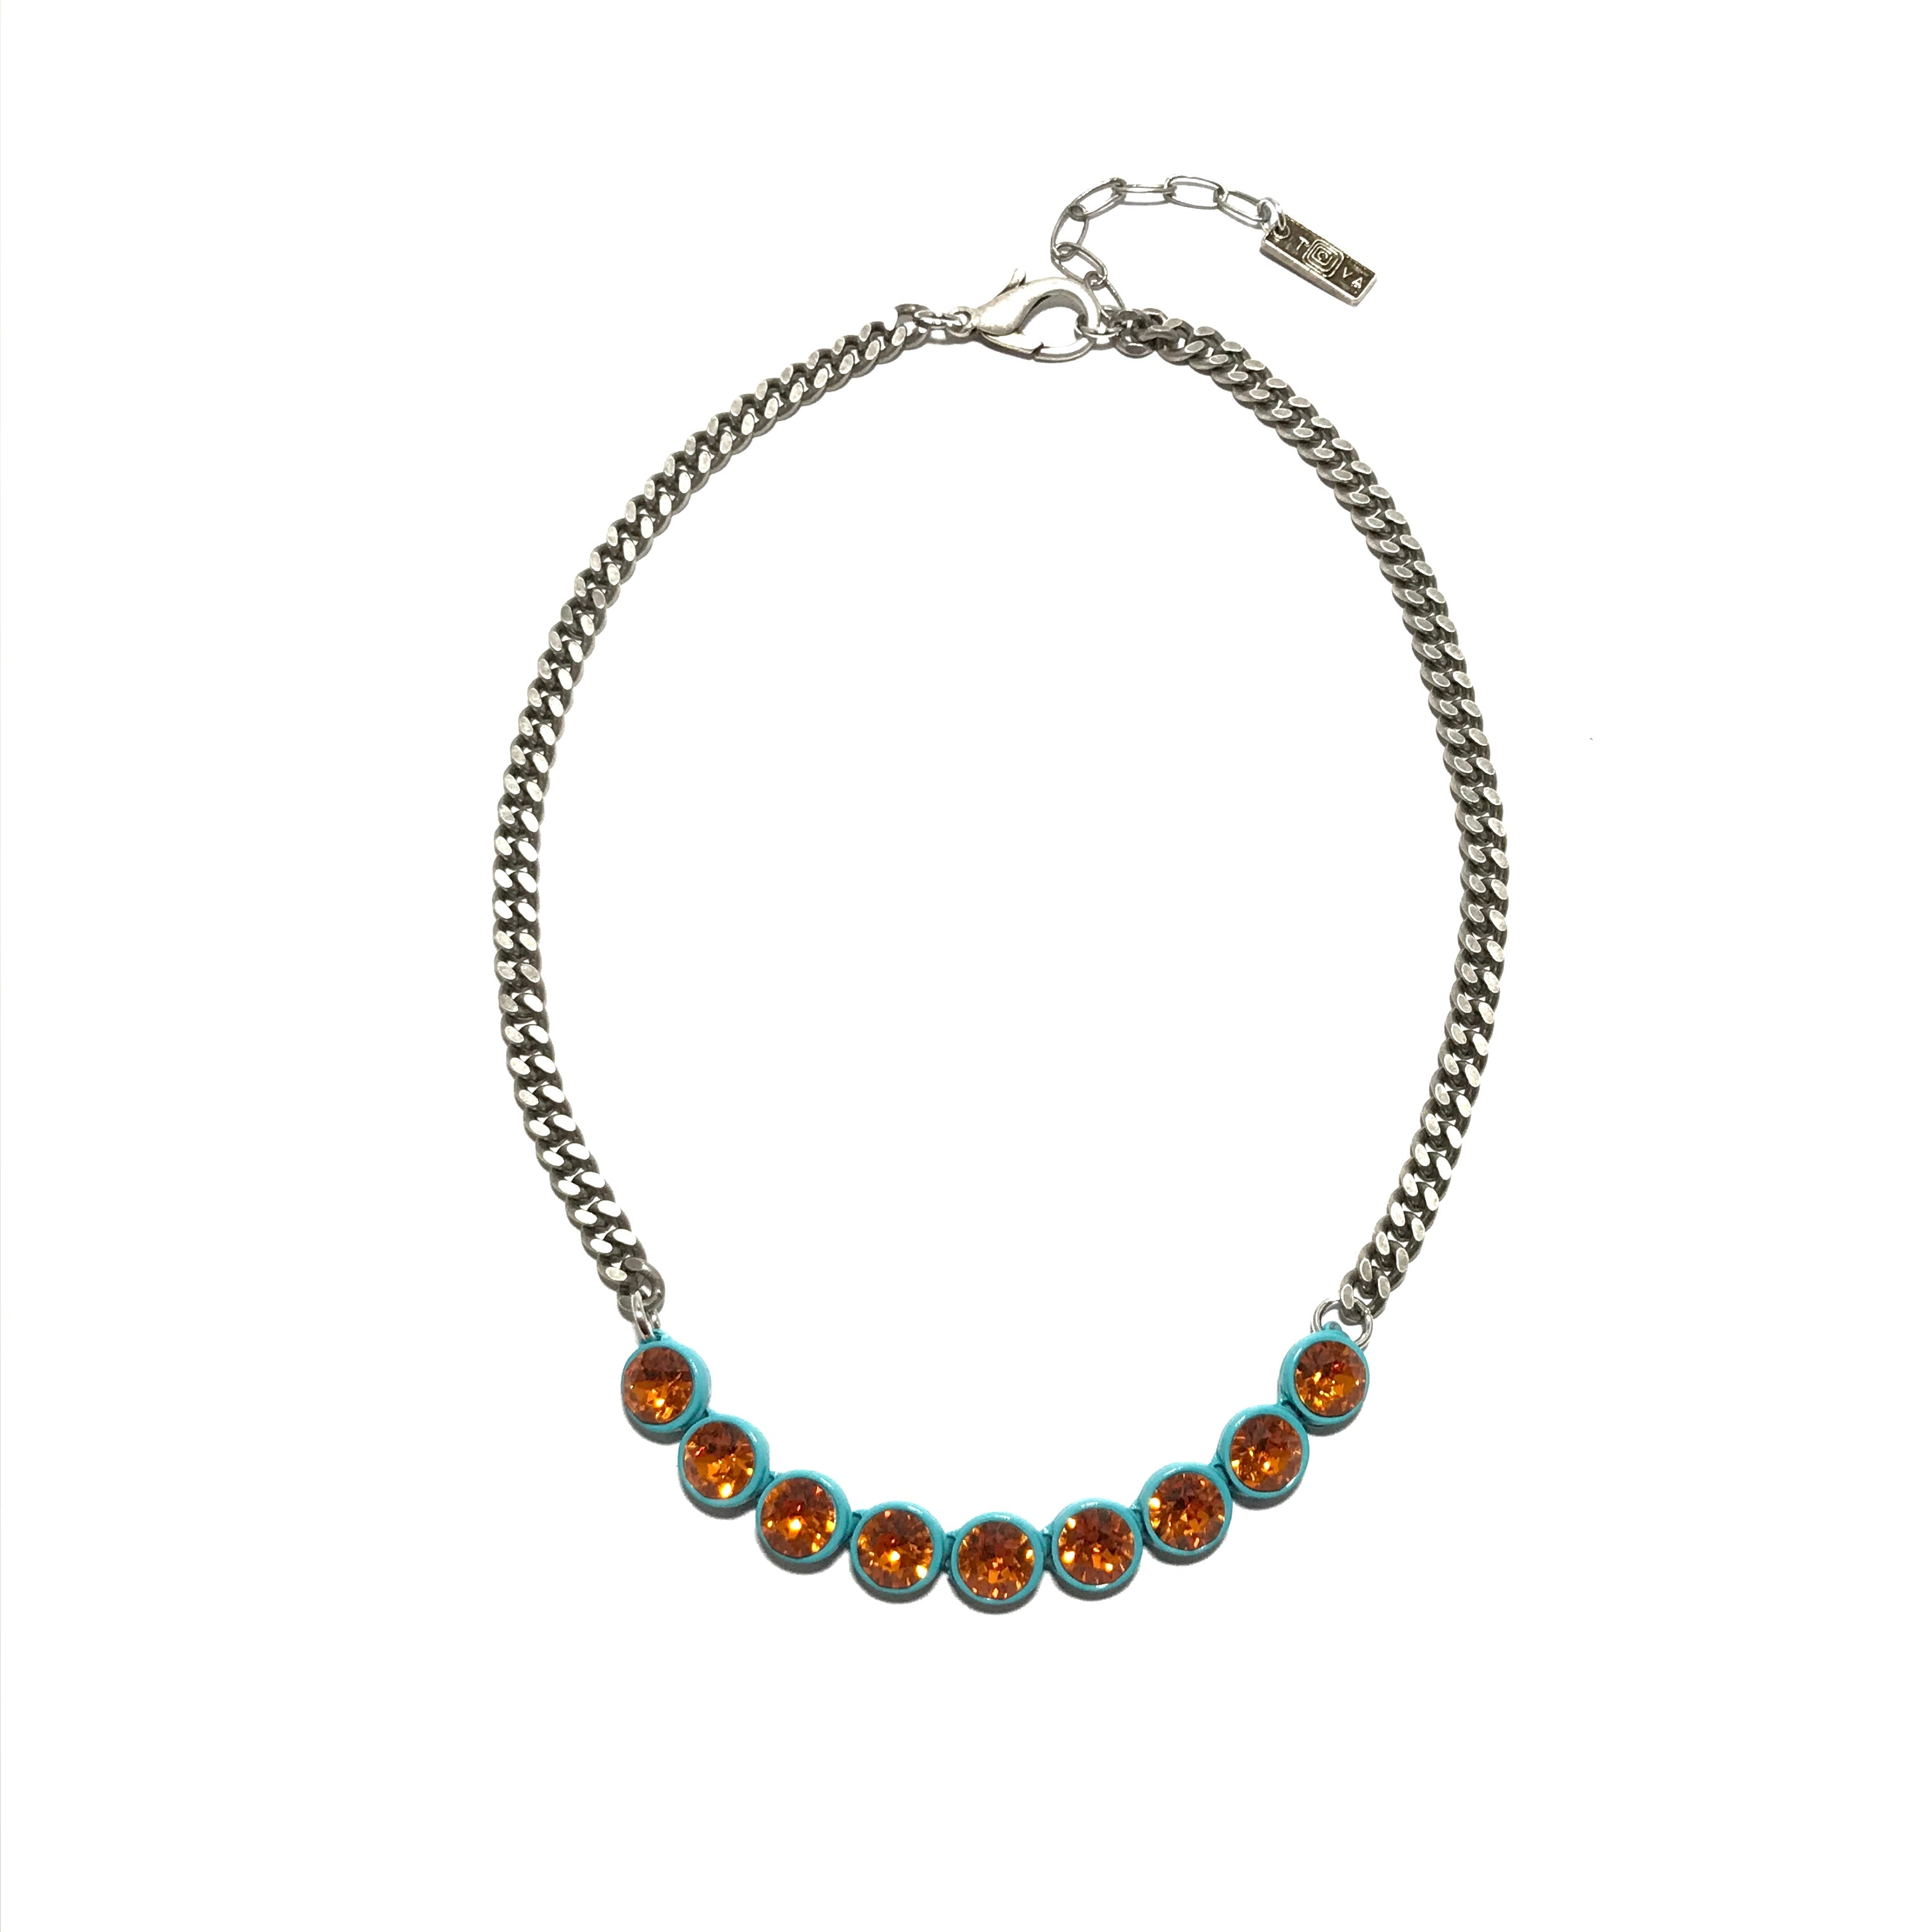 Tova-Tessa Necklace in Turquoise and Astral Pink